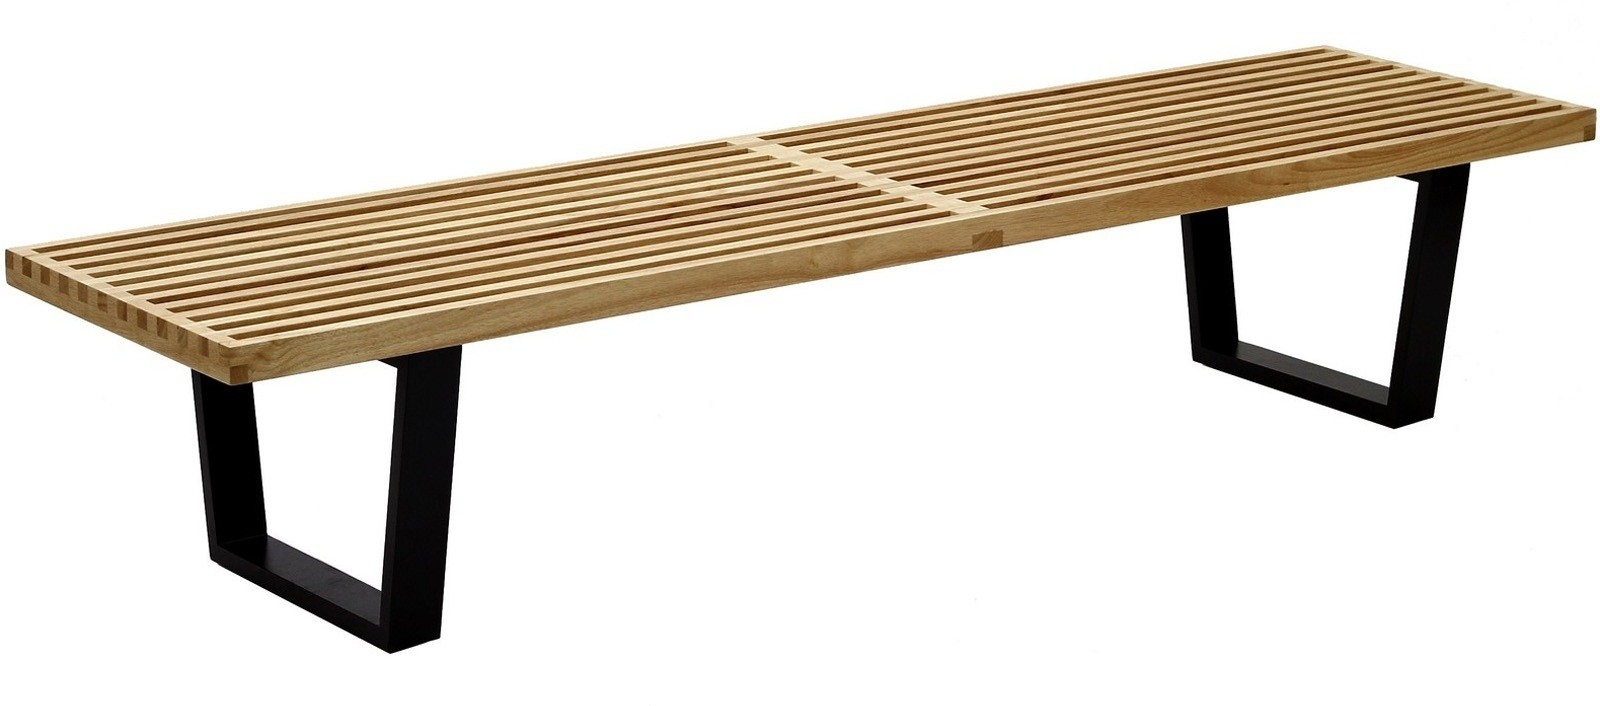 6 39 Sauna Bench In Natural Wood From Renegade Eei 585